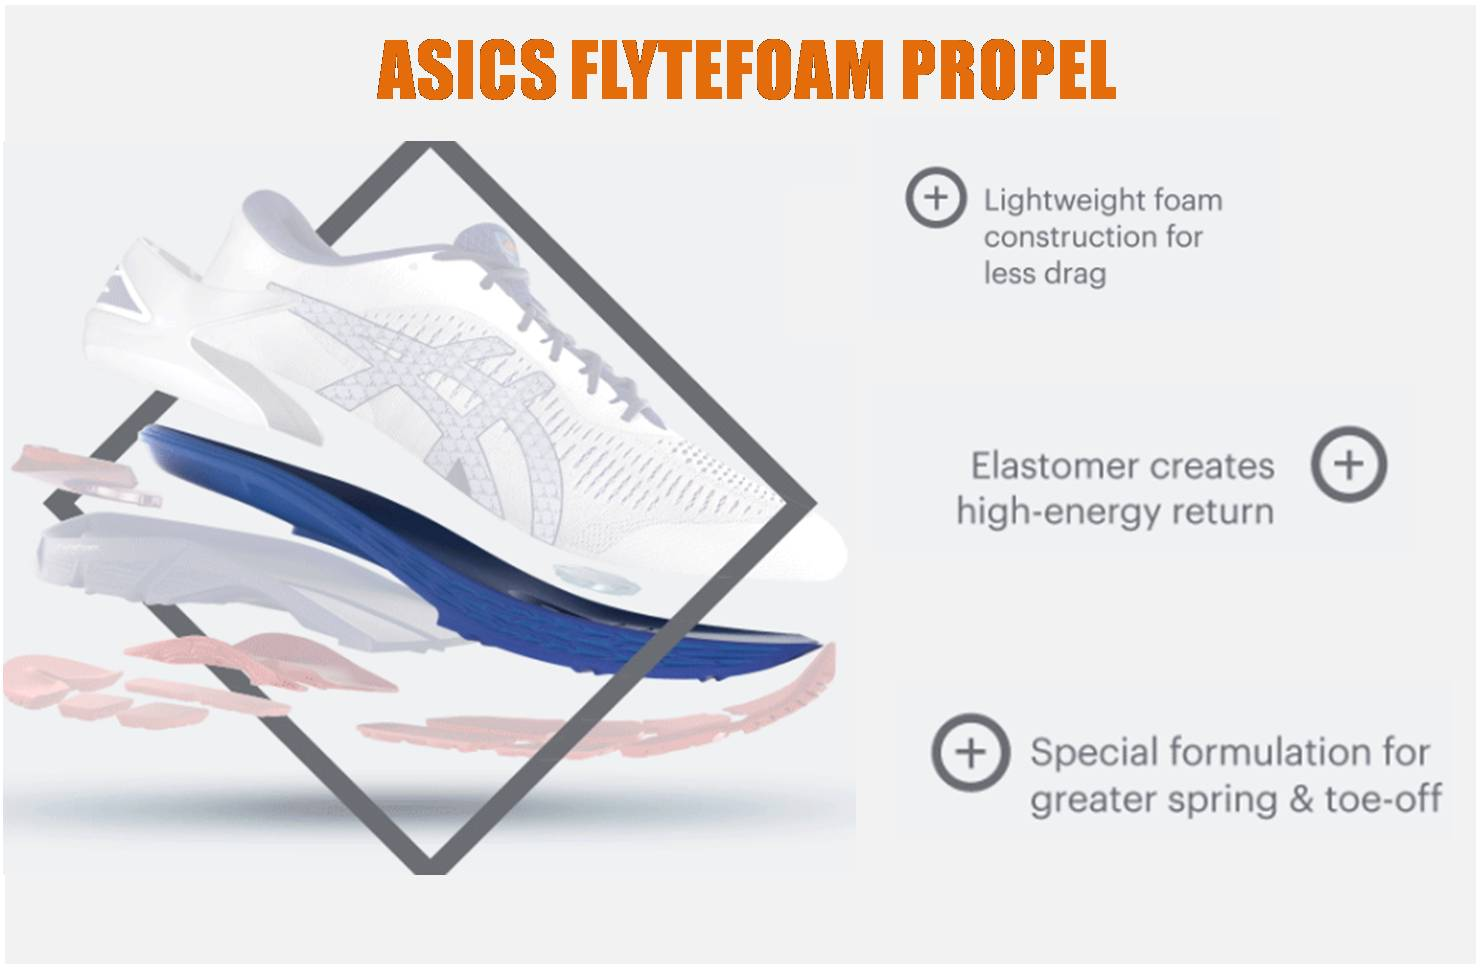 ASICS_GEL_TECHNOLOGY_FLYTEFOAM_PROPEL_TECHNOLOGY_khelmart2